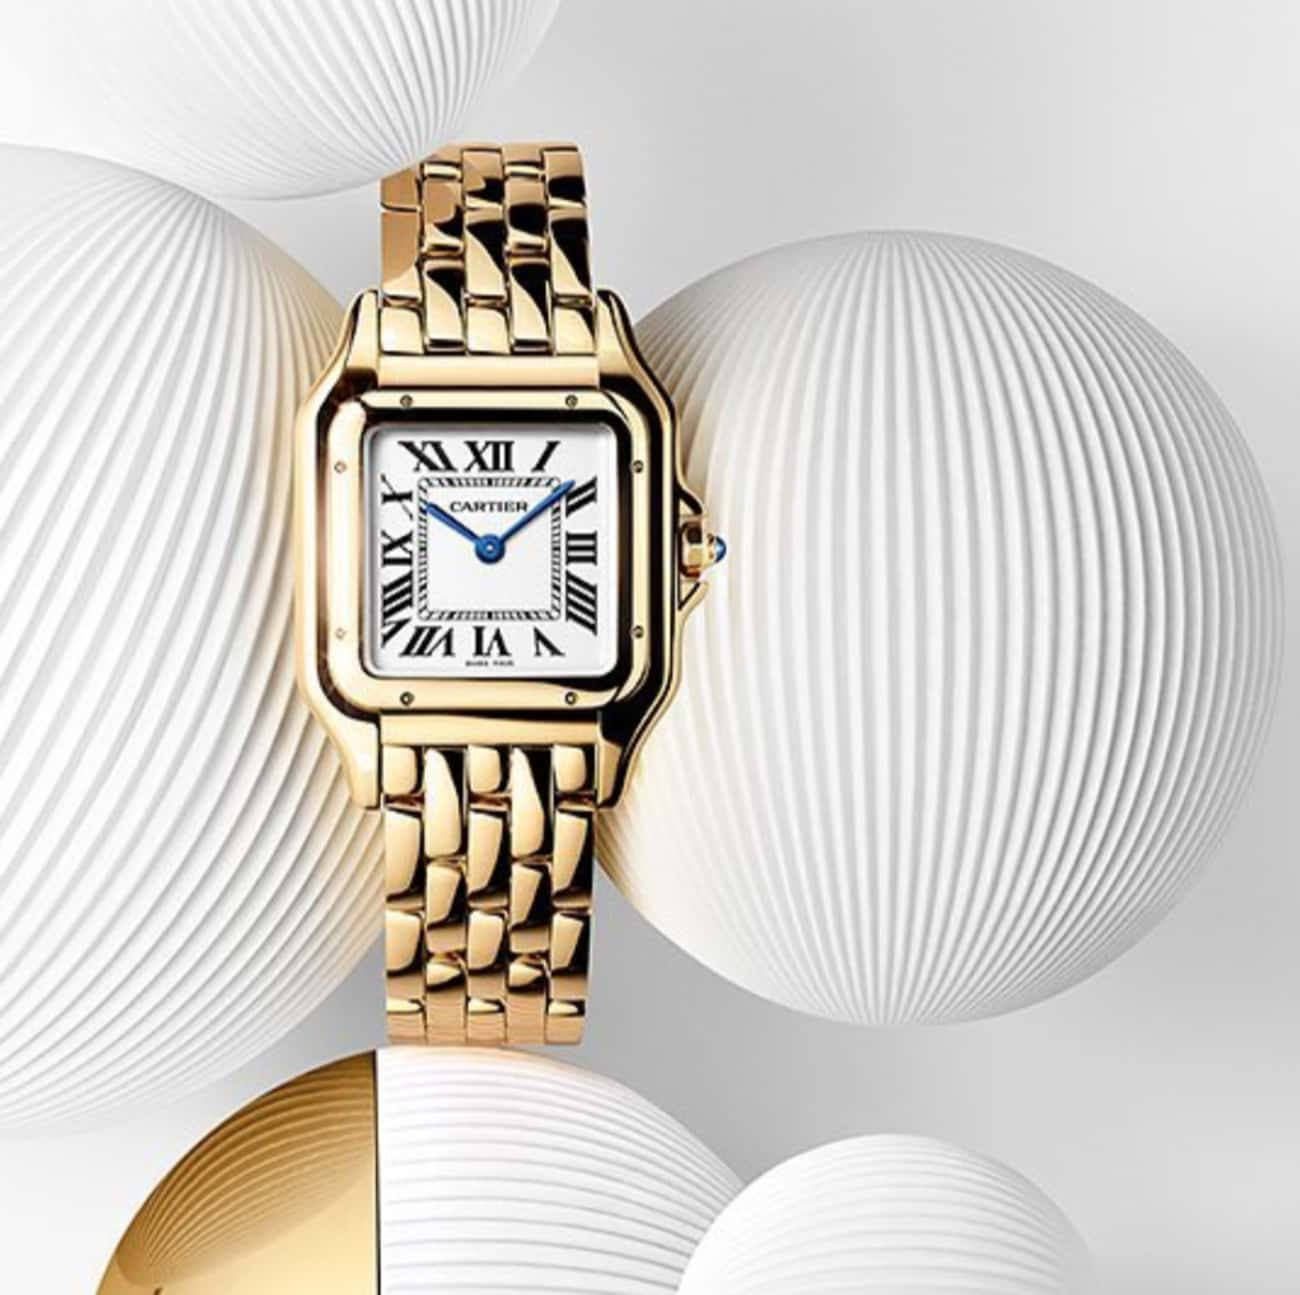 Cartier is listed (or ranked) 1 on the list The Best Jewelry Brands